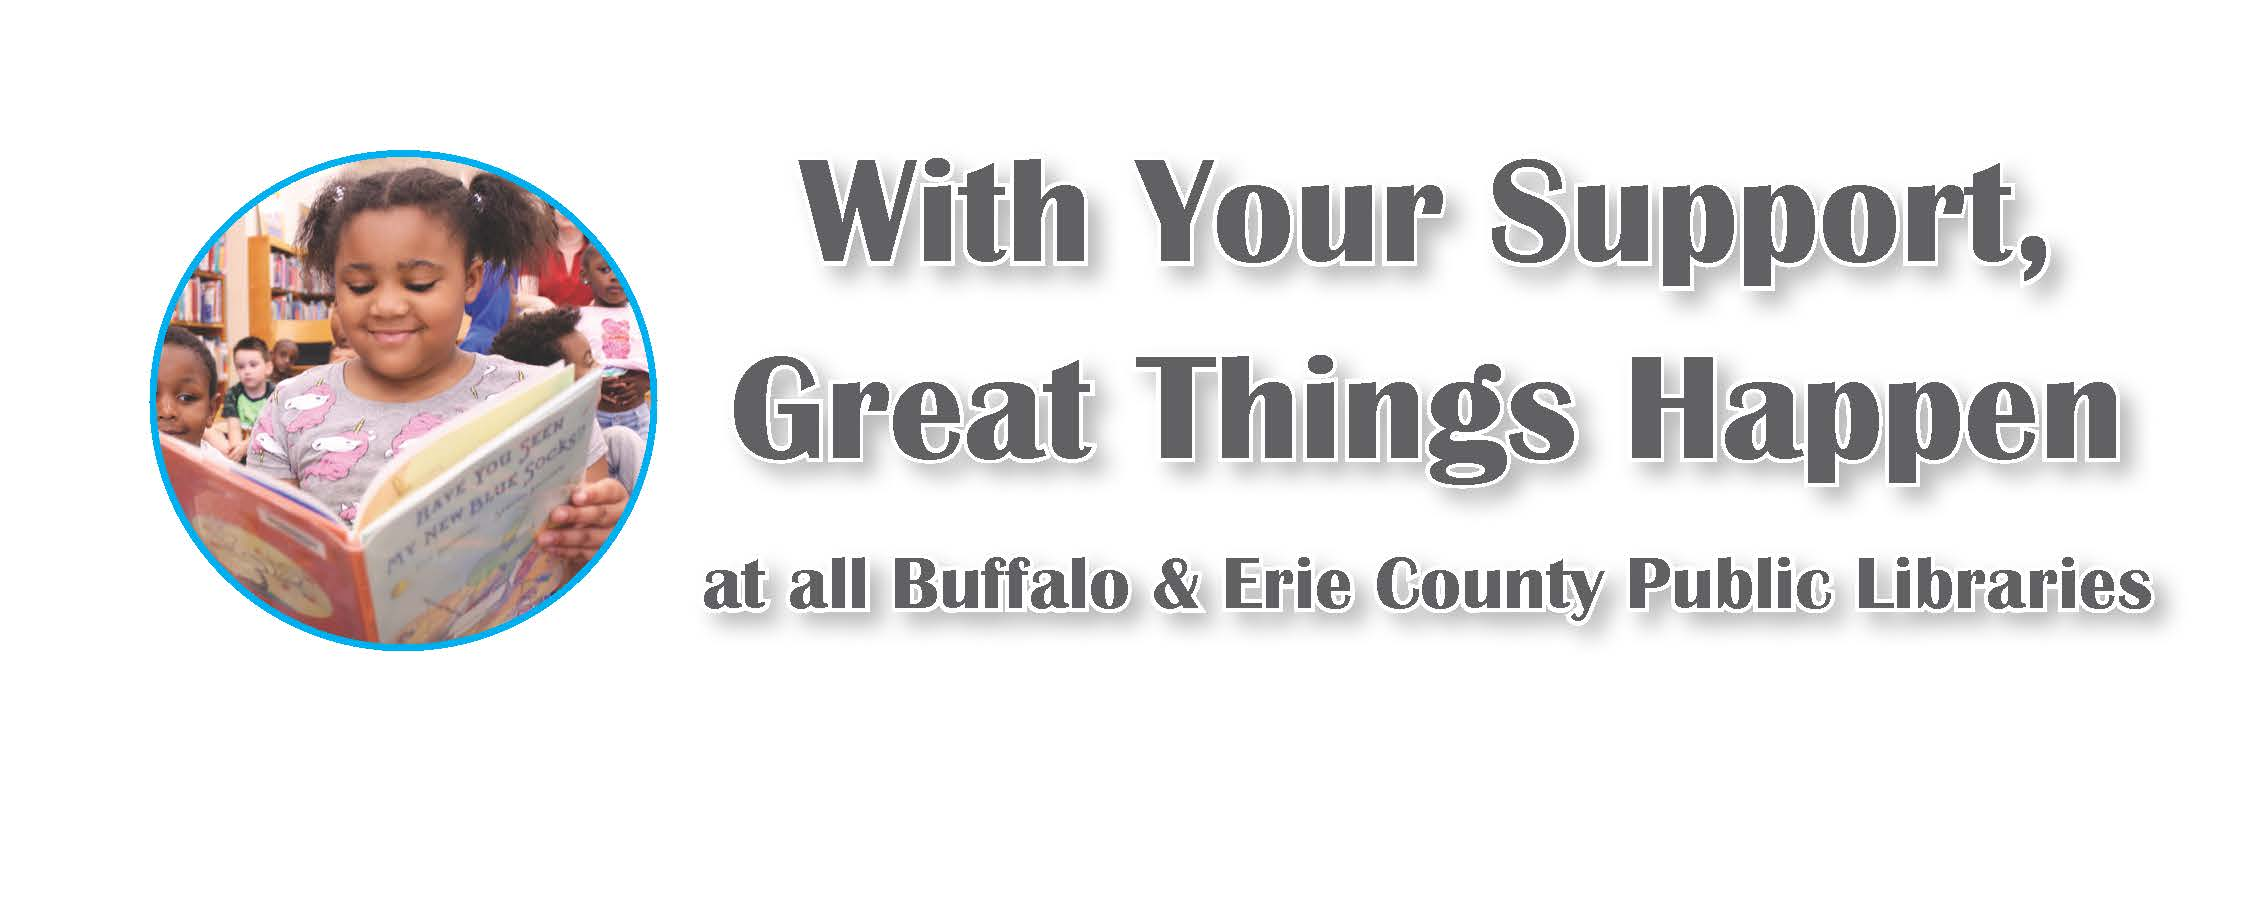 With Your Support, Great Things Happen at the Library